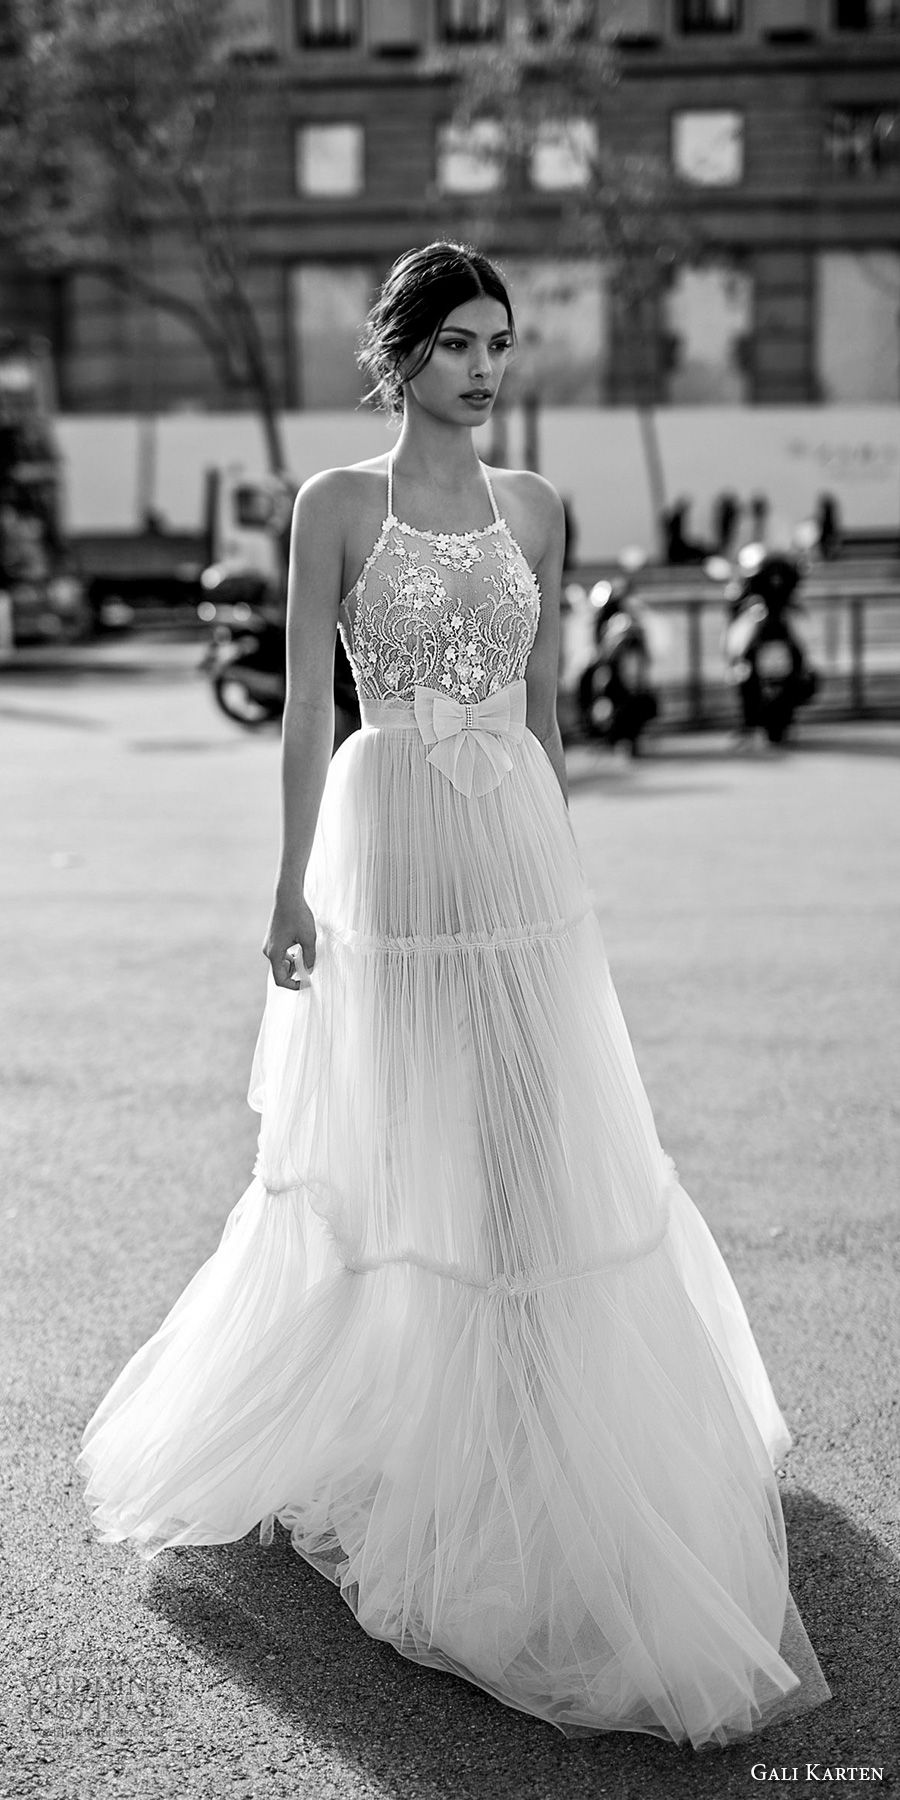 gali karten 2017 bridal sleeveless halter neck heavily embellished bodice romantic a line wedding dress open strap back sweep train (2) mv